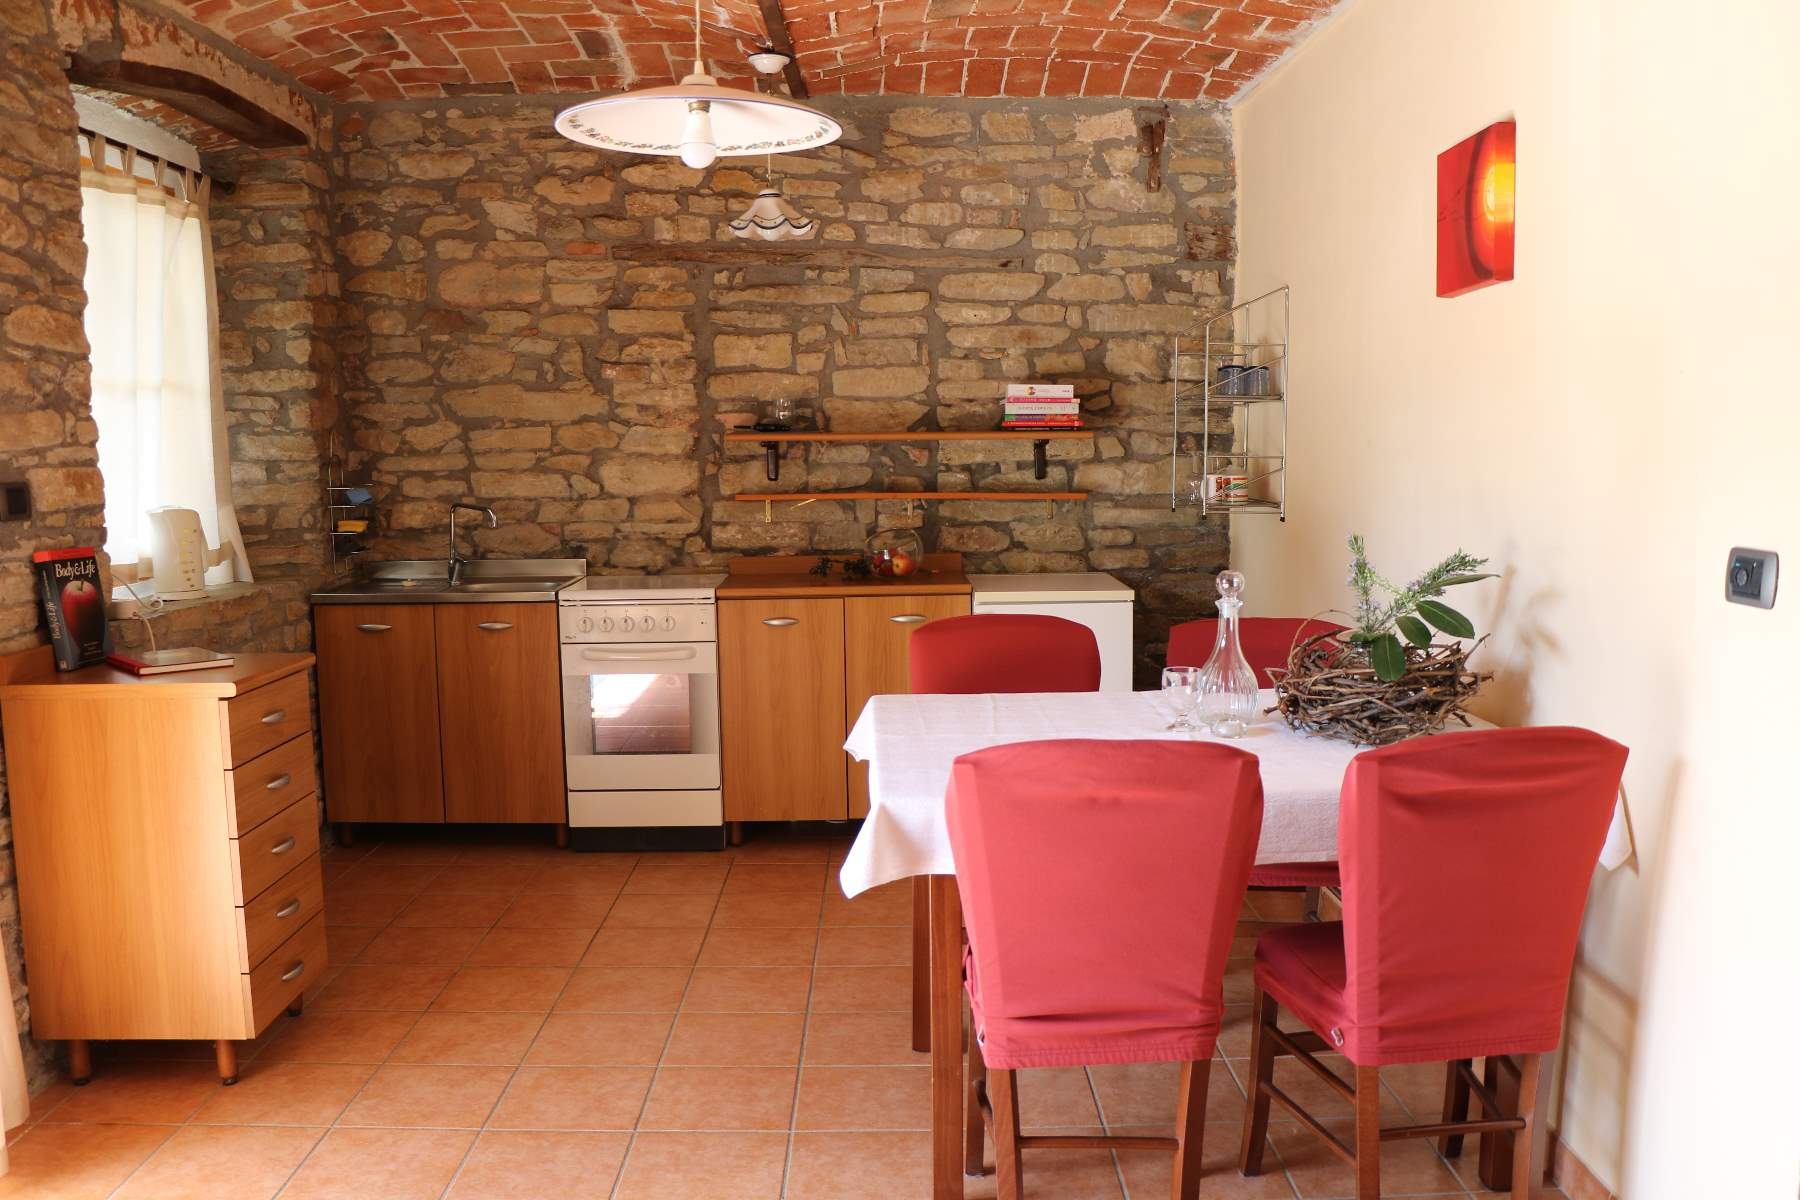 Casa Re, Piemonte - Ferienwohnung Mama | Holiday Apartment Mama | Appartamento Vacanze Mama